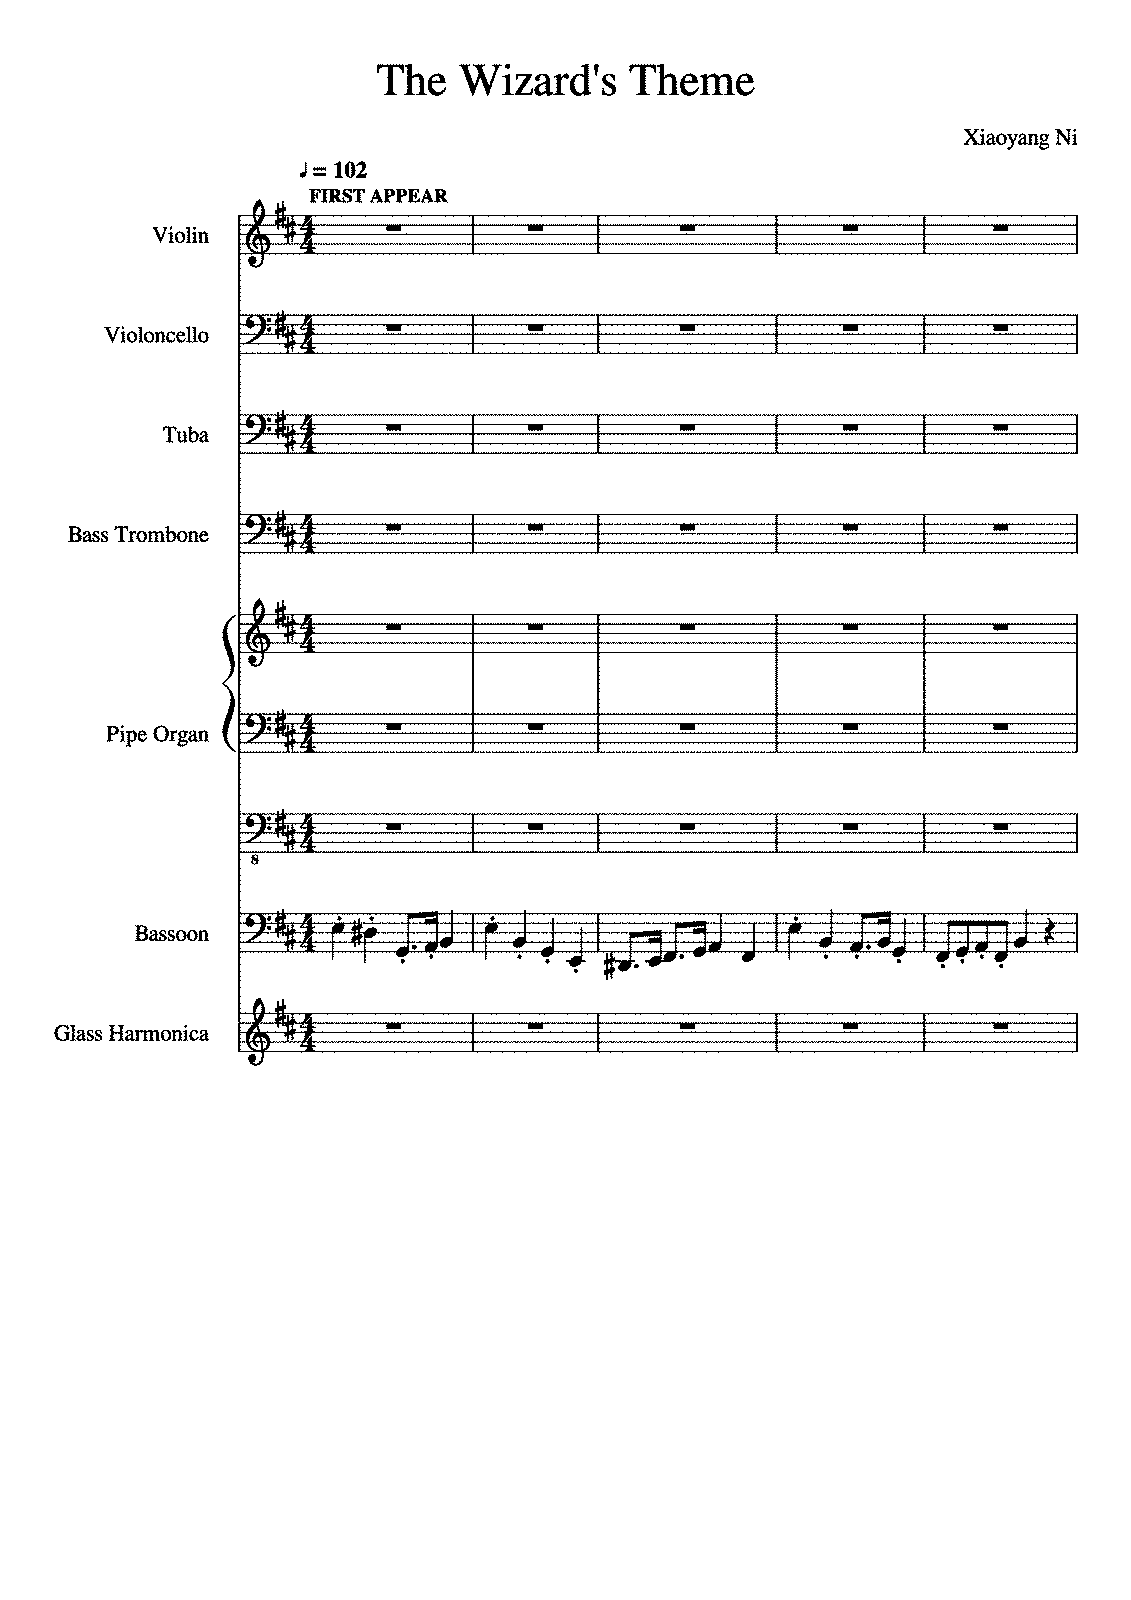 The Wizard's Theme (Ni, Xiaoyang) - IMSLP/Petrucci Music Library